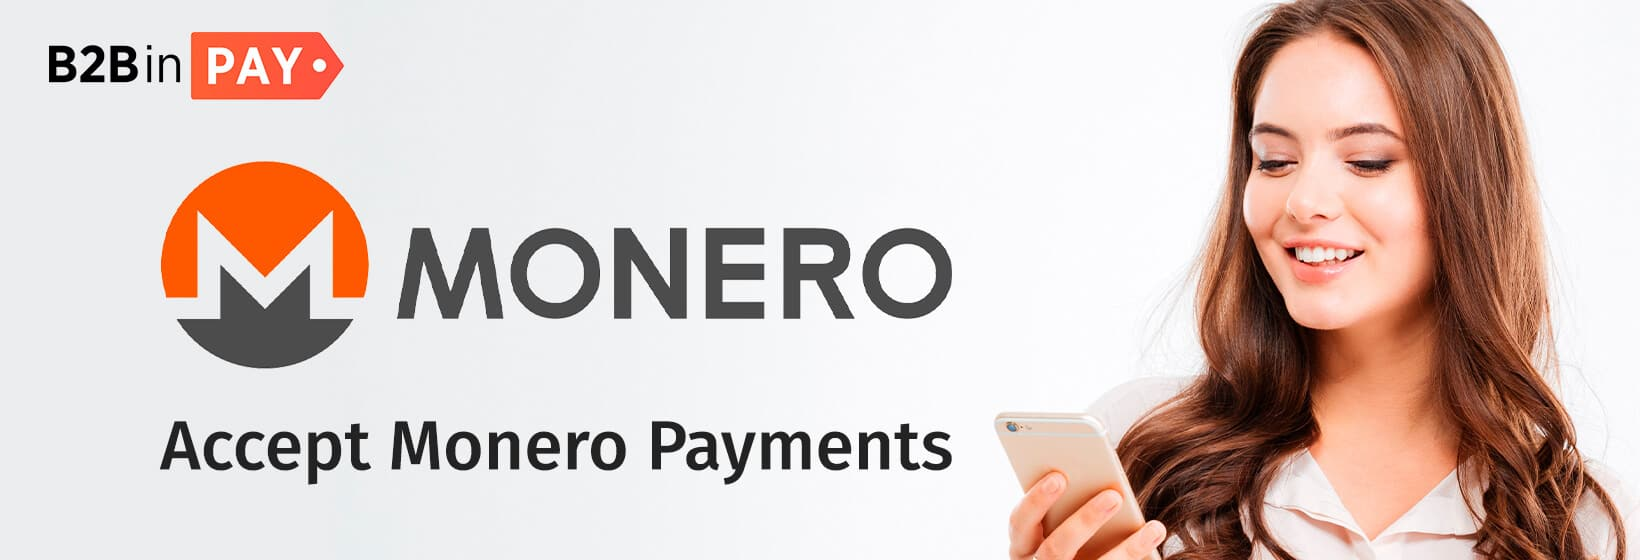 how much is monero cryptocurrency